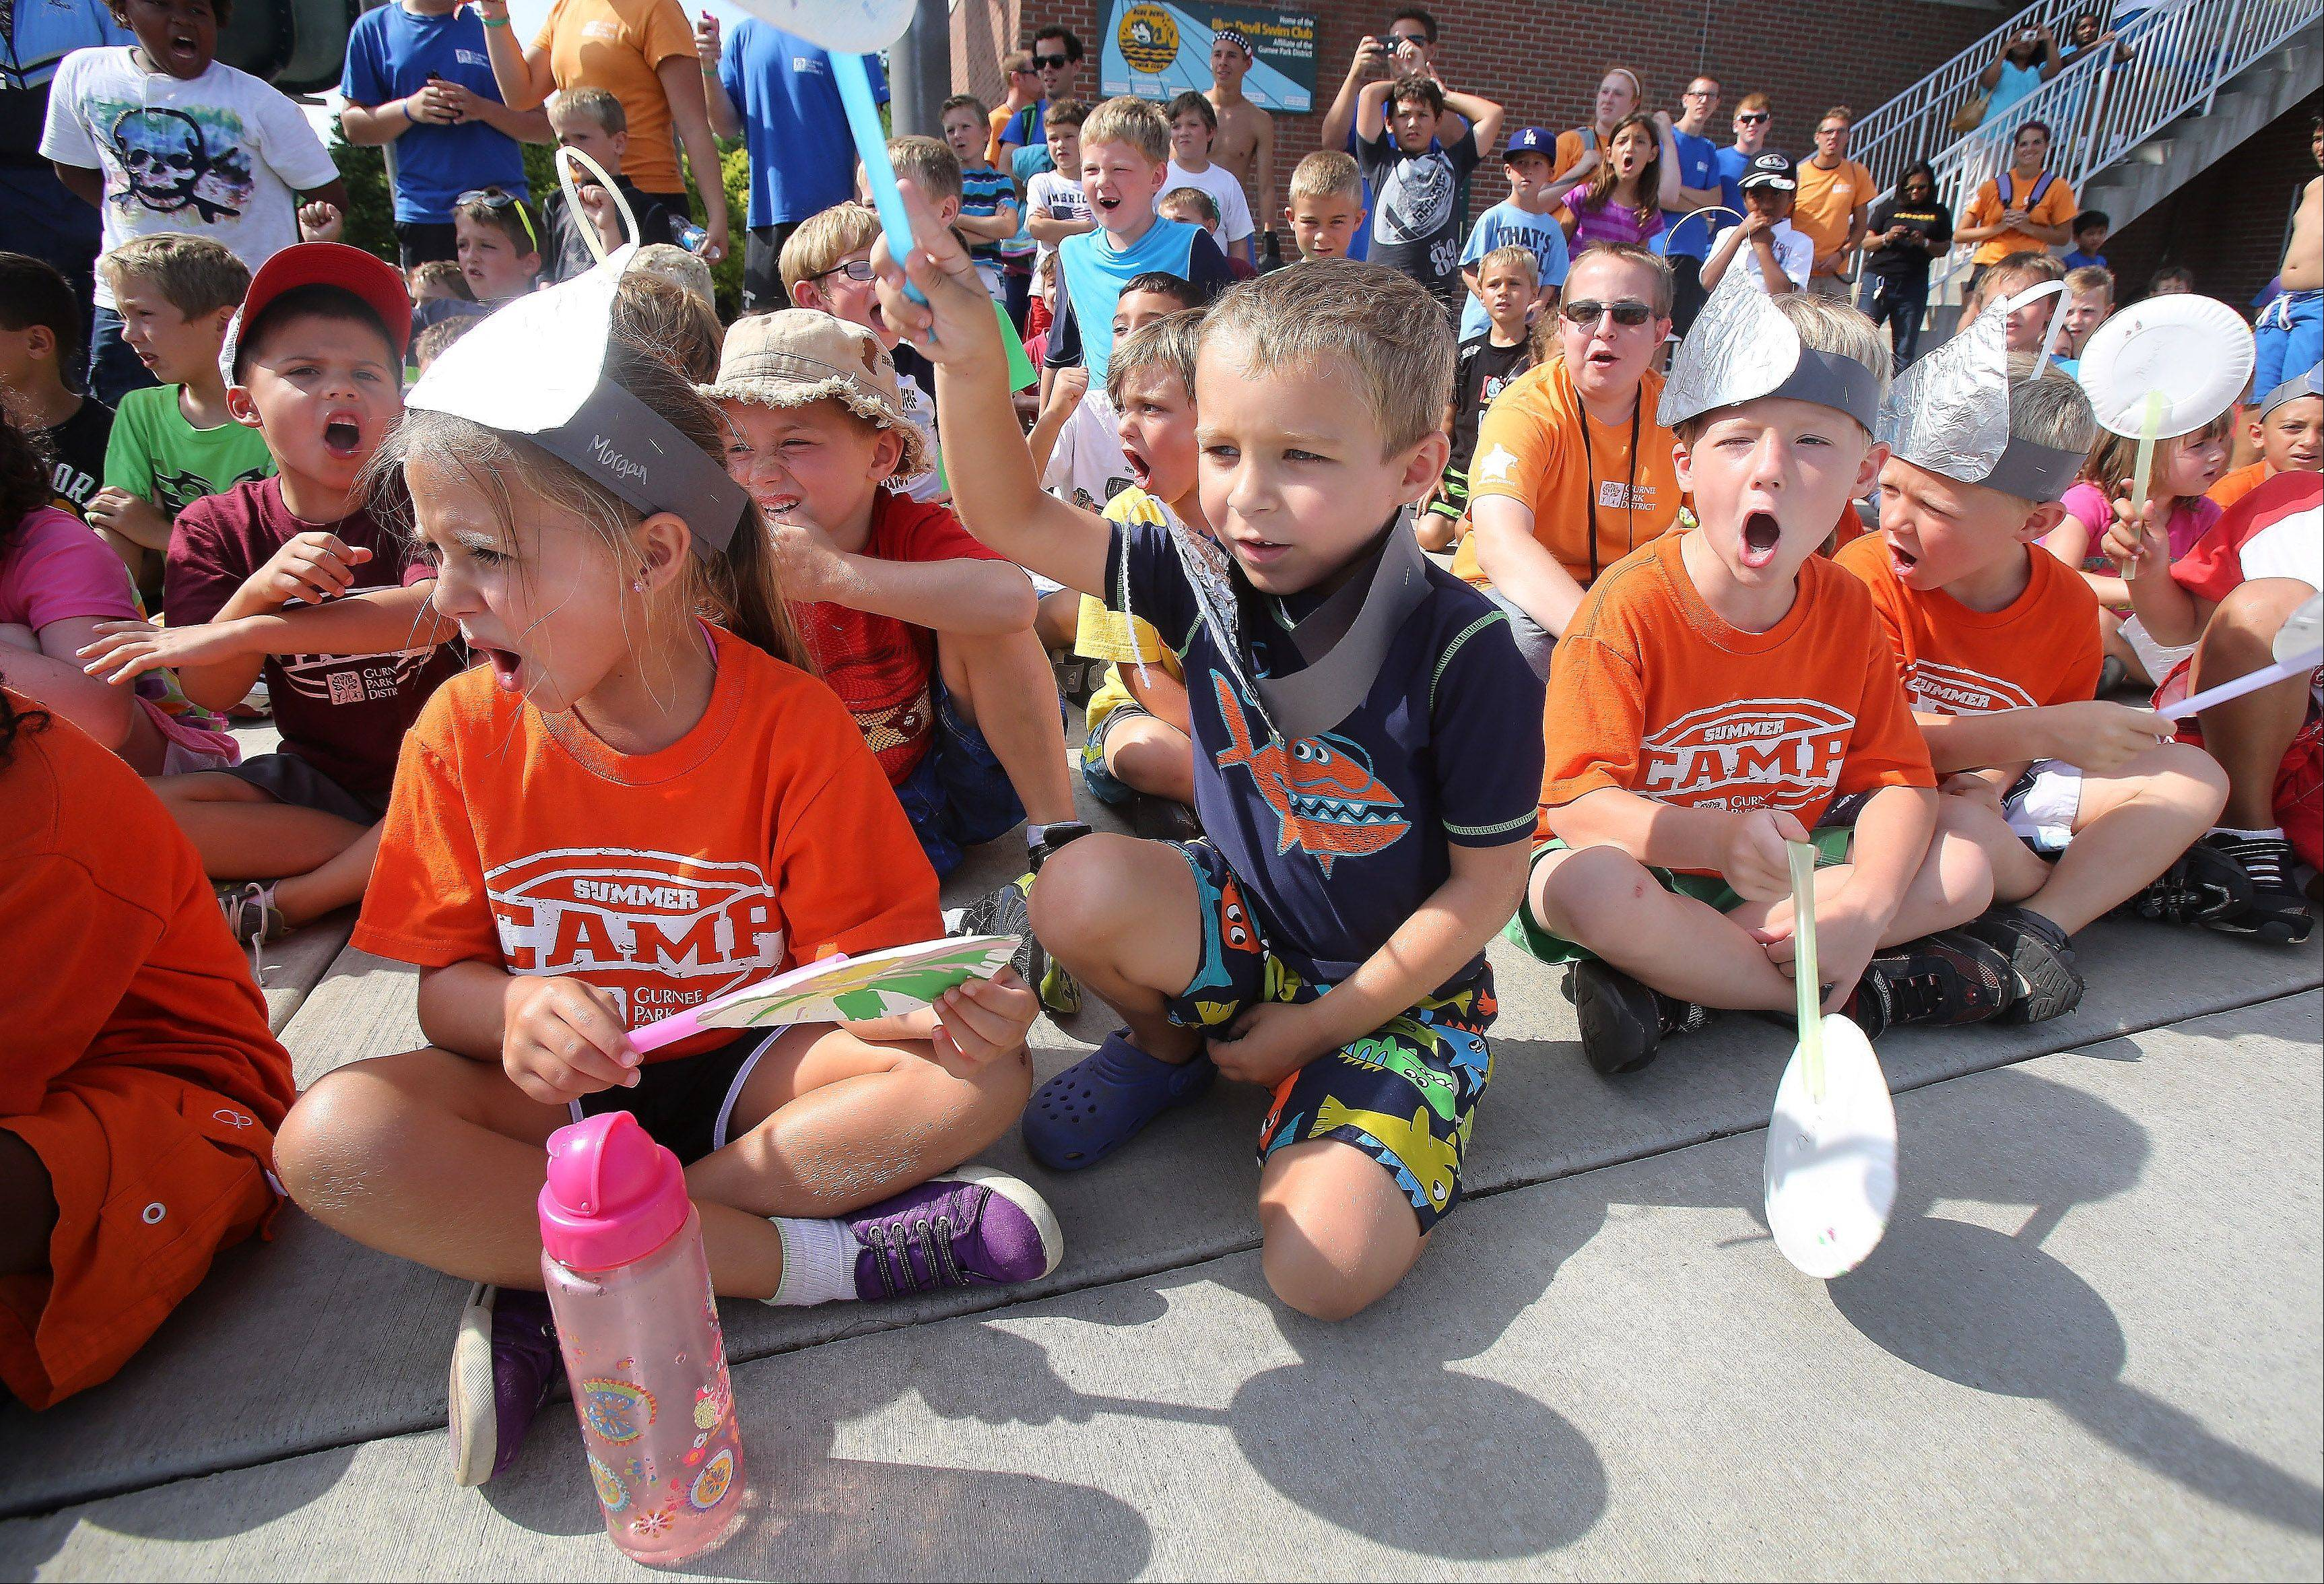 From left, 6-year-old Viking Discovery campers Morgan Ghys, Lucas Jablonski and Dean Foster yell encouragement to their favorites boats.